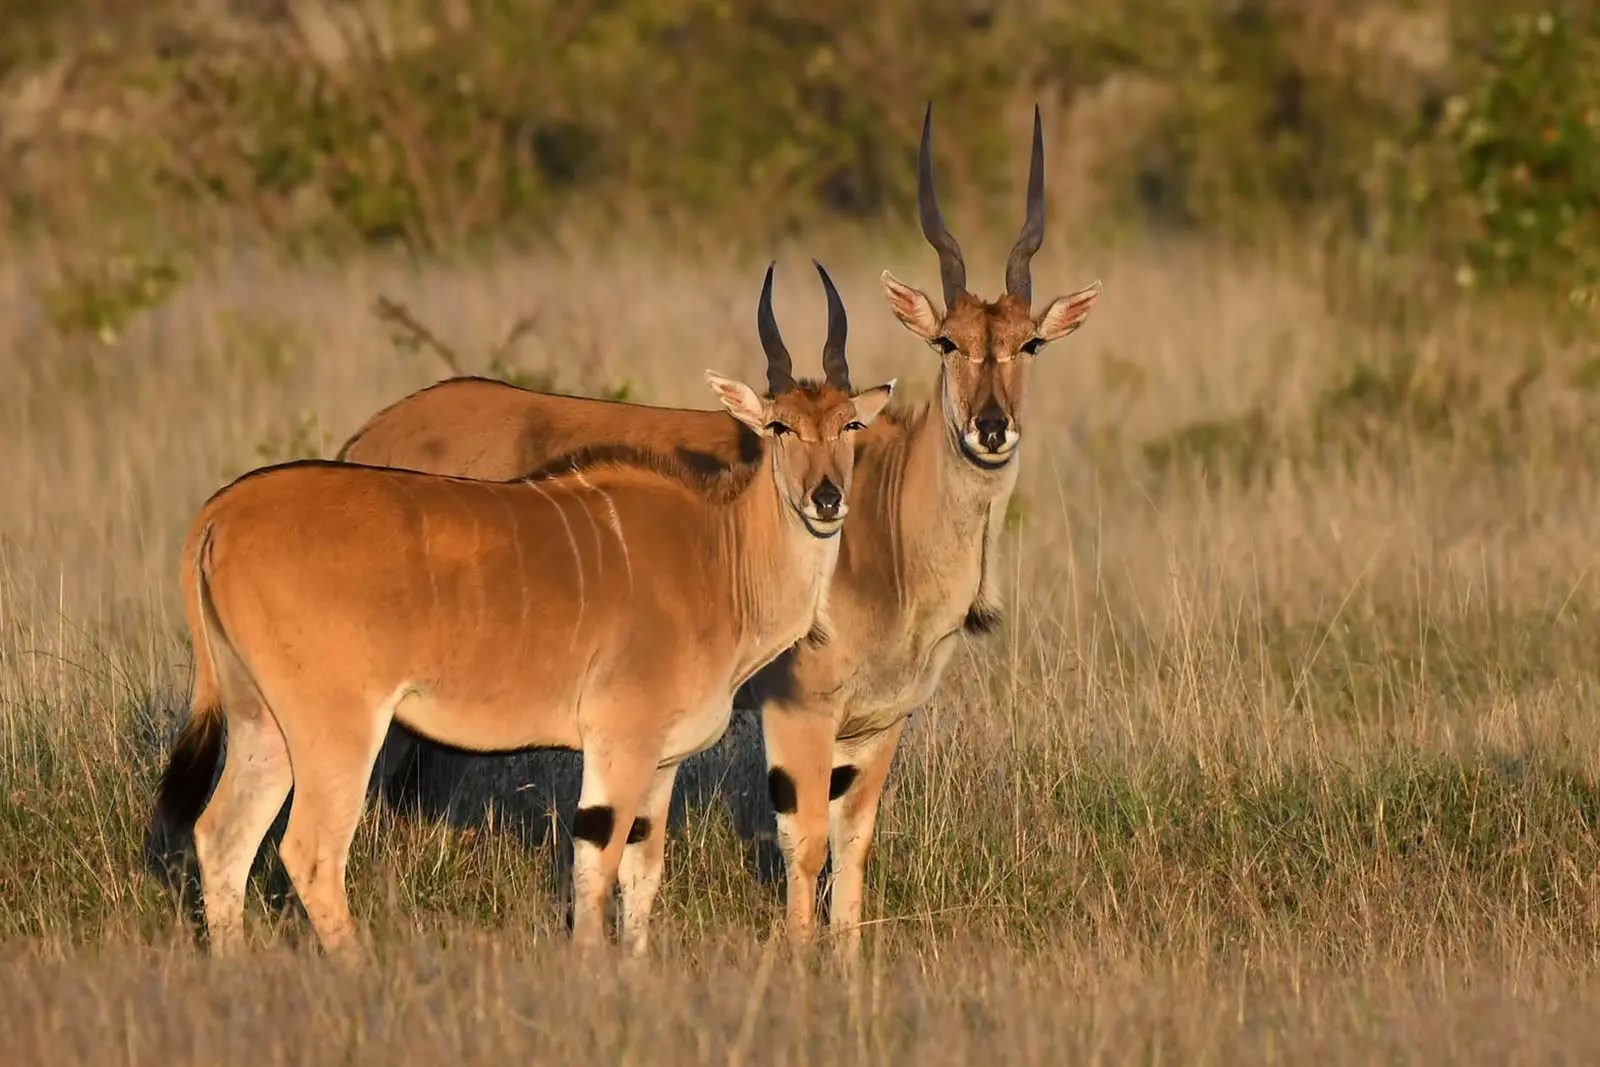 Common eland (Taurotragus oryx) in uganda